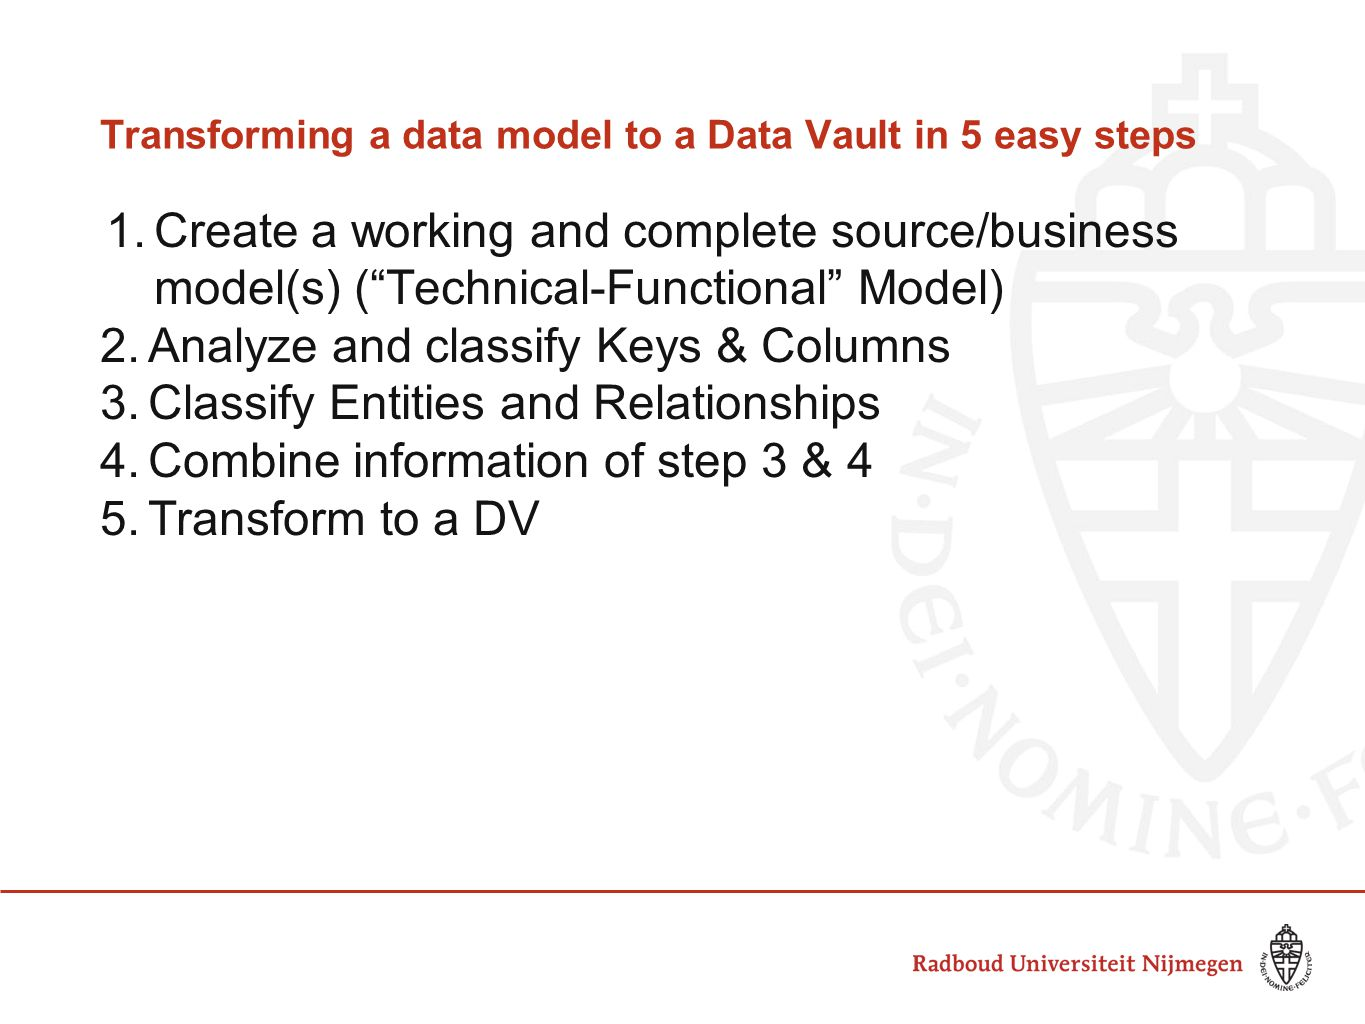 Transforming a data model to a Data Vault in 5 easy steps